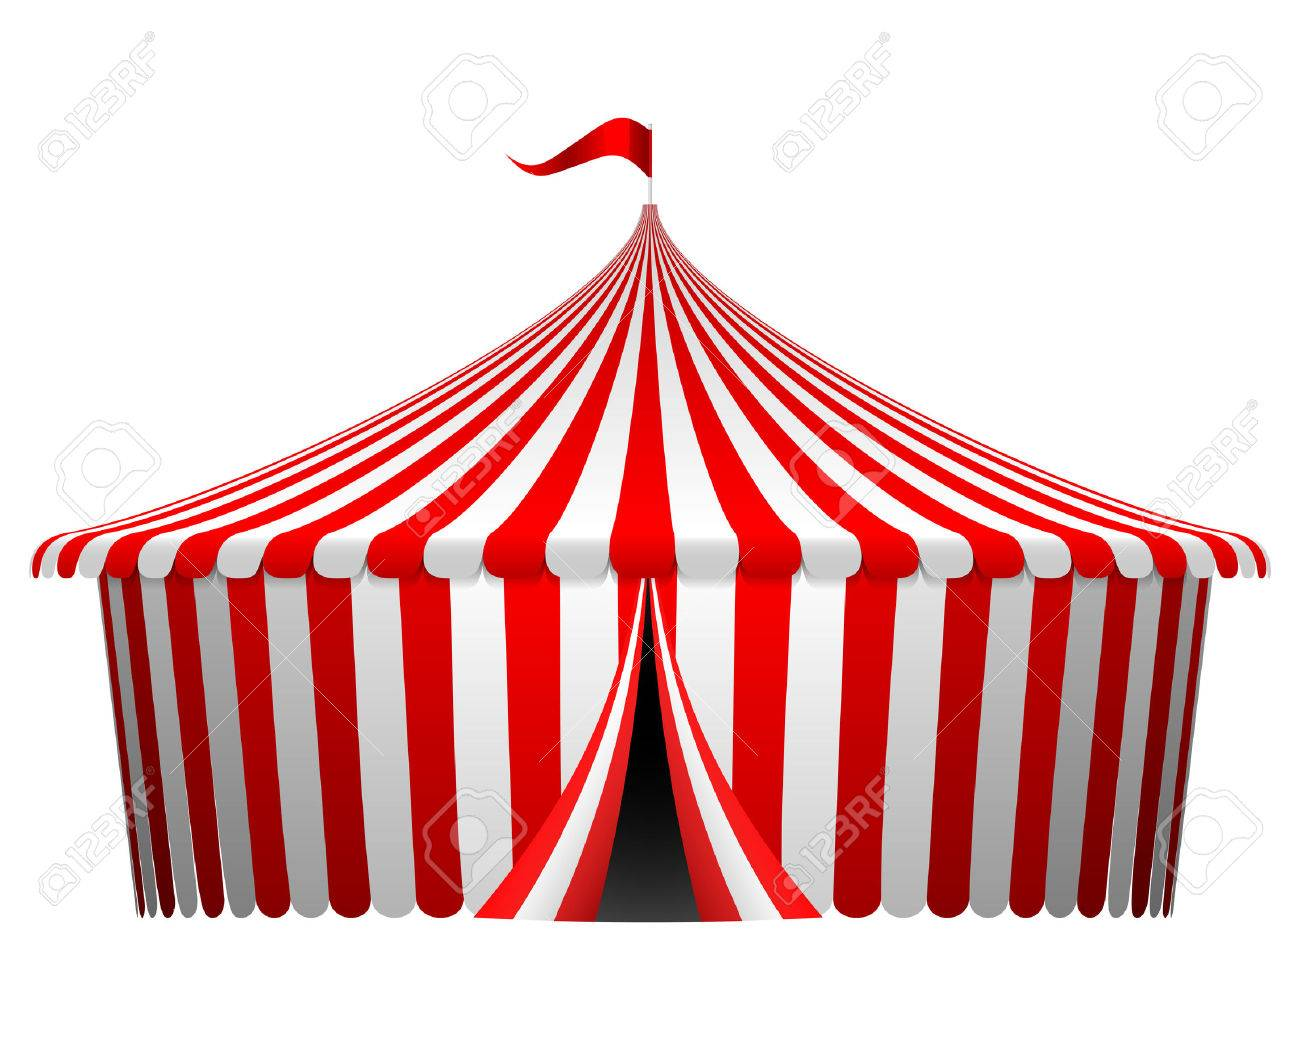 Vector illustration of circus tent - 47904124